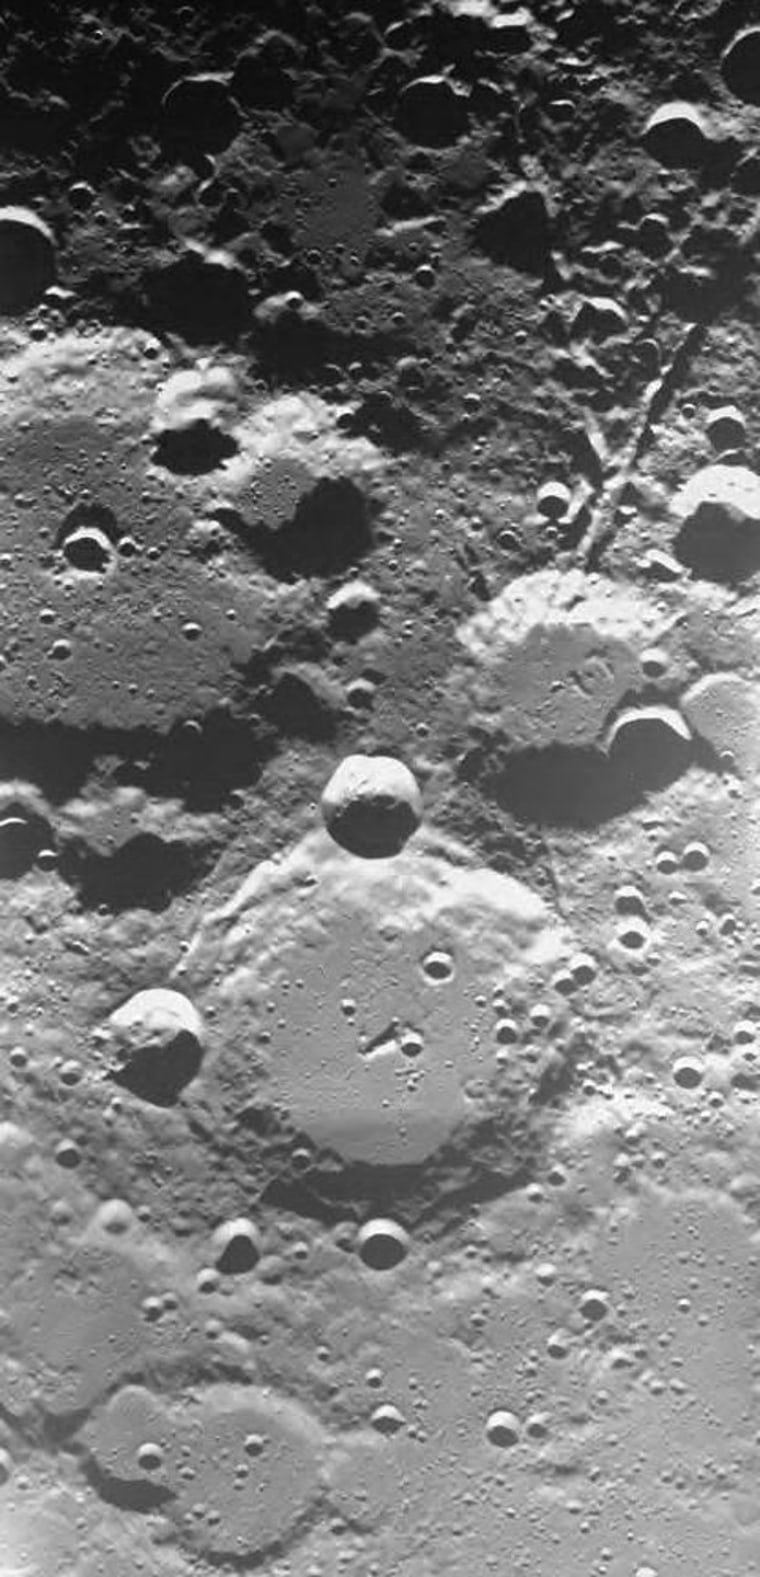 ThisSMART-1 imageshows the area around two large lunar craters. The larger crater, called Brianchon (middle left), is situated at 75 degreesnorth and 86 degrees west. The second one is called Pascal (middle bottom), at 74 degrees north and 70 degrees west.